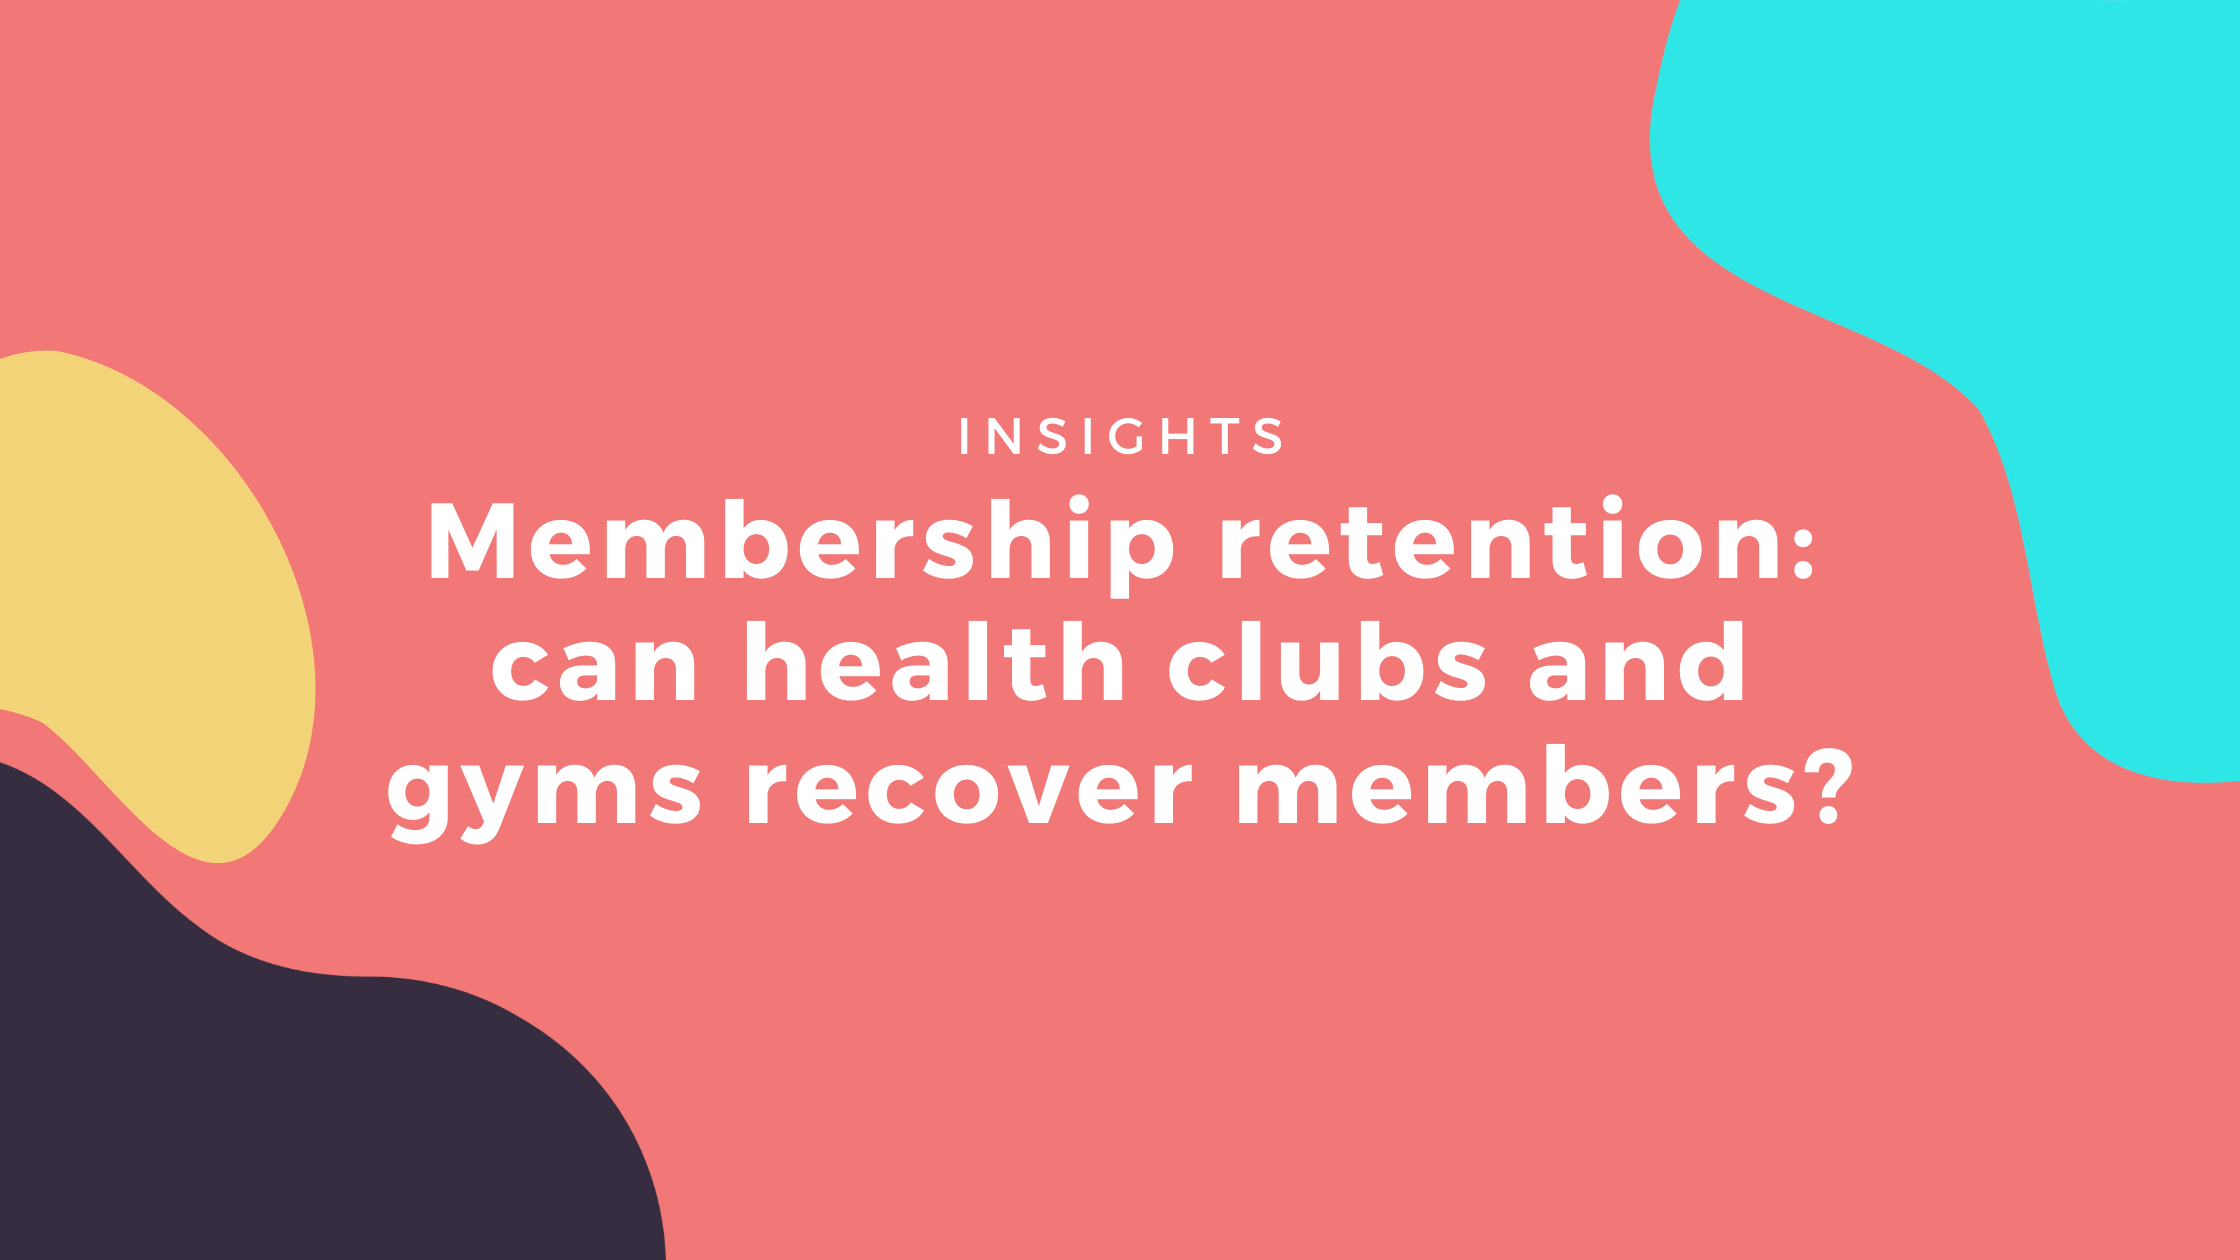 membership retention can health clubs and gyms recover members